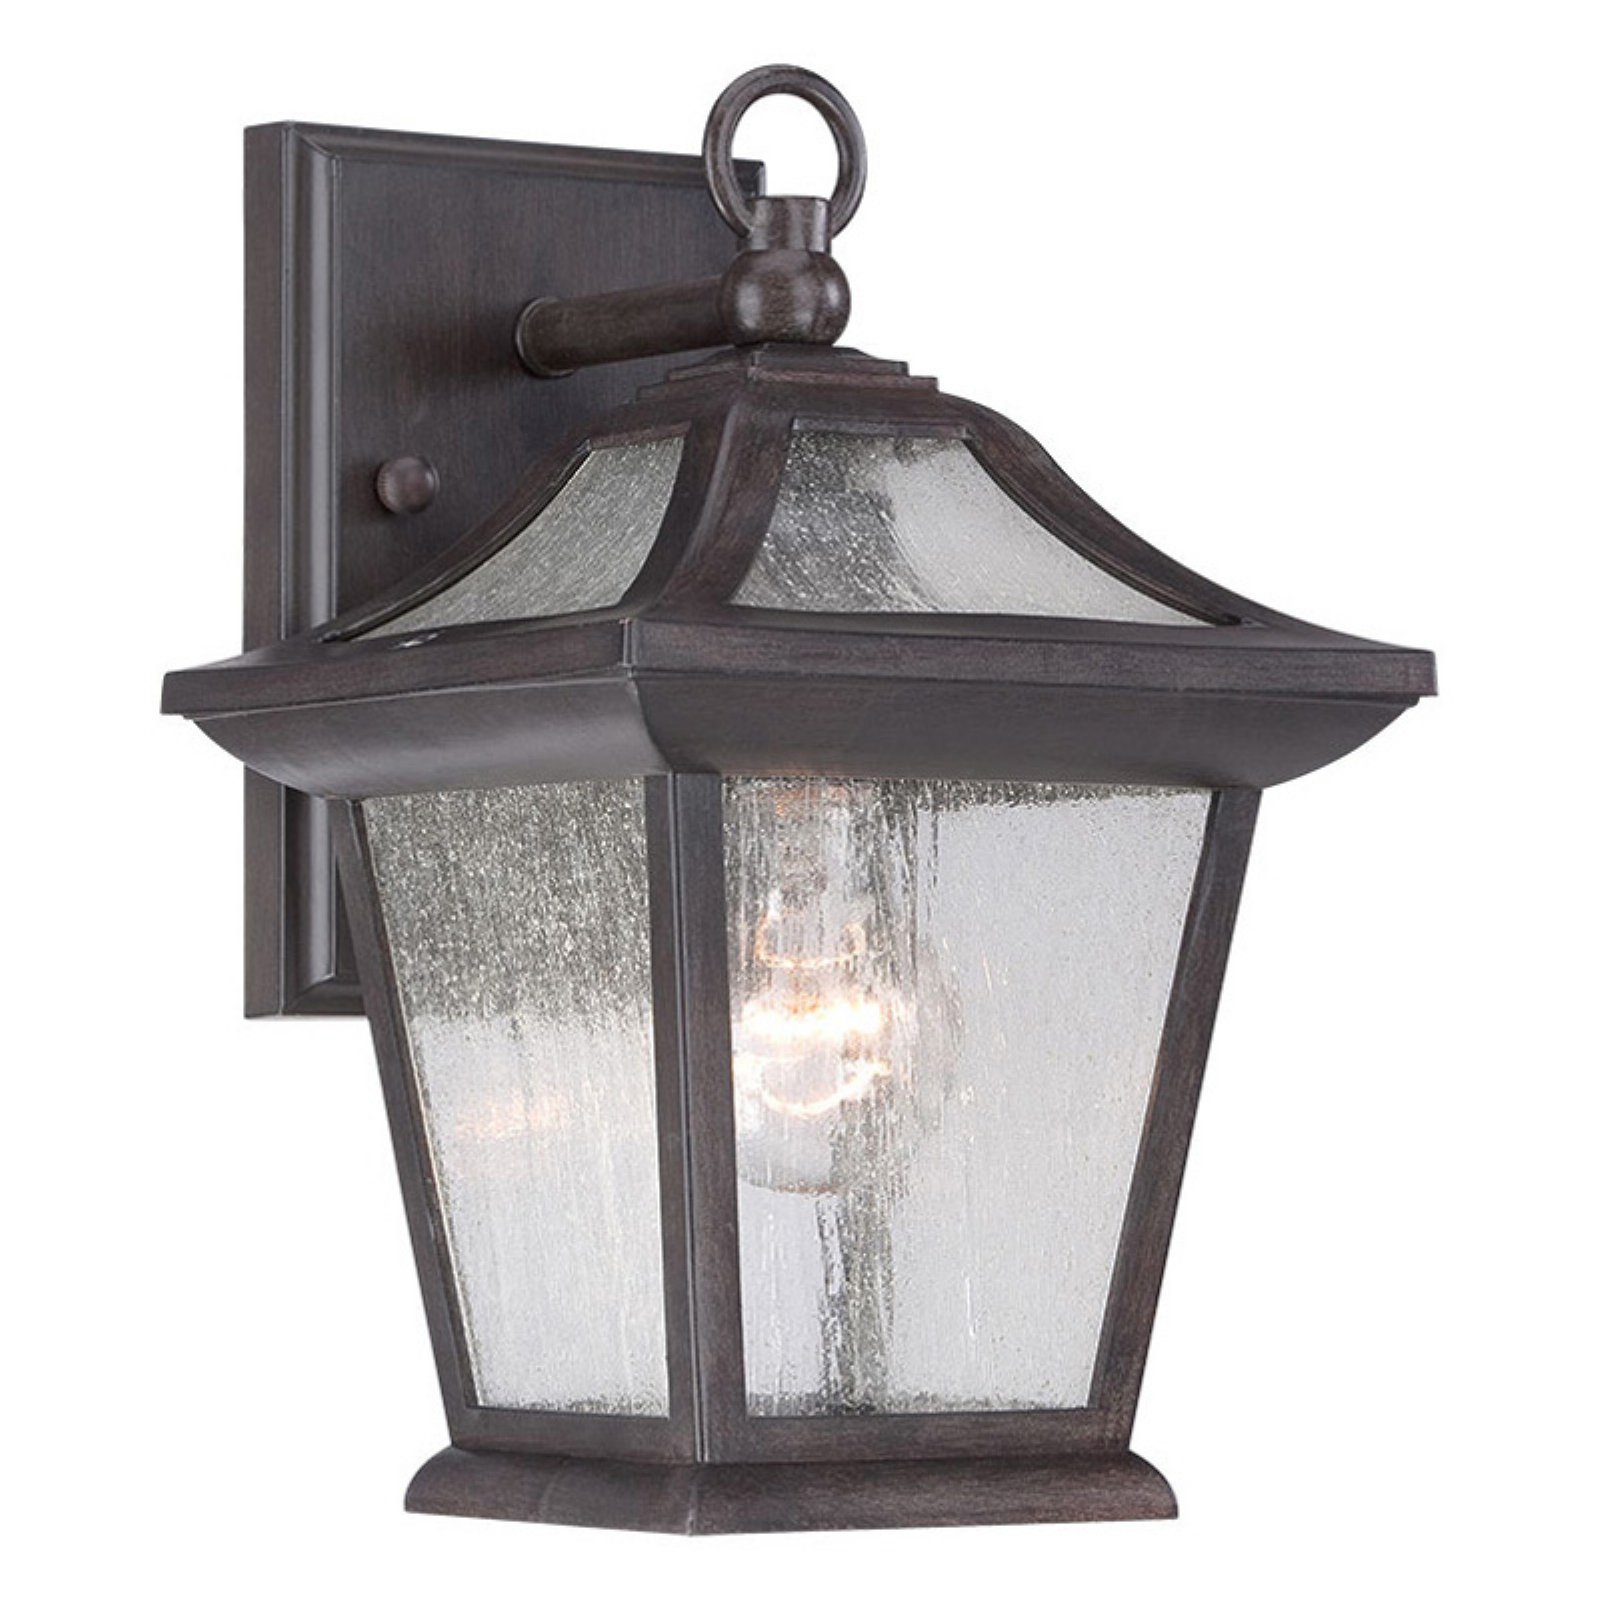 Image of Acclaim Lighting Aiken Outdoor Wall Mount Light Fixture